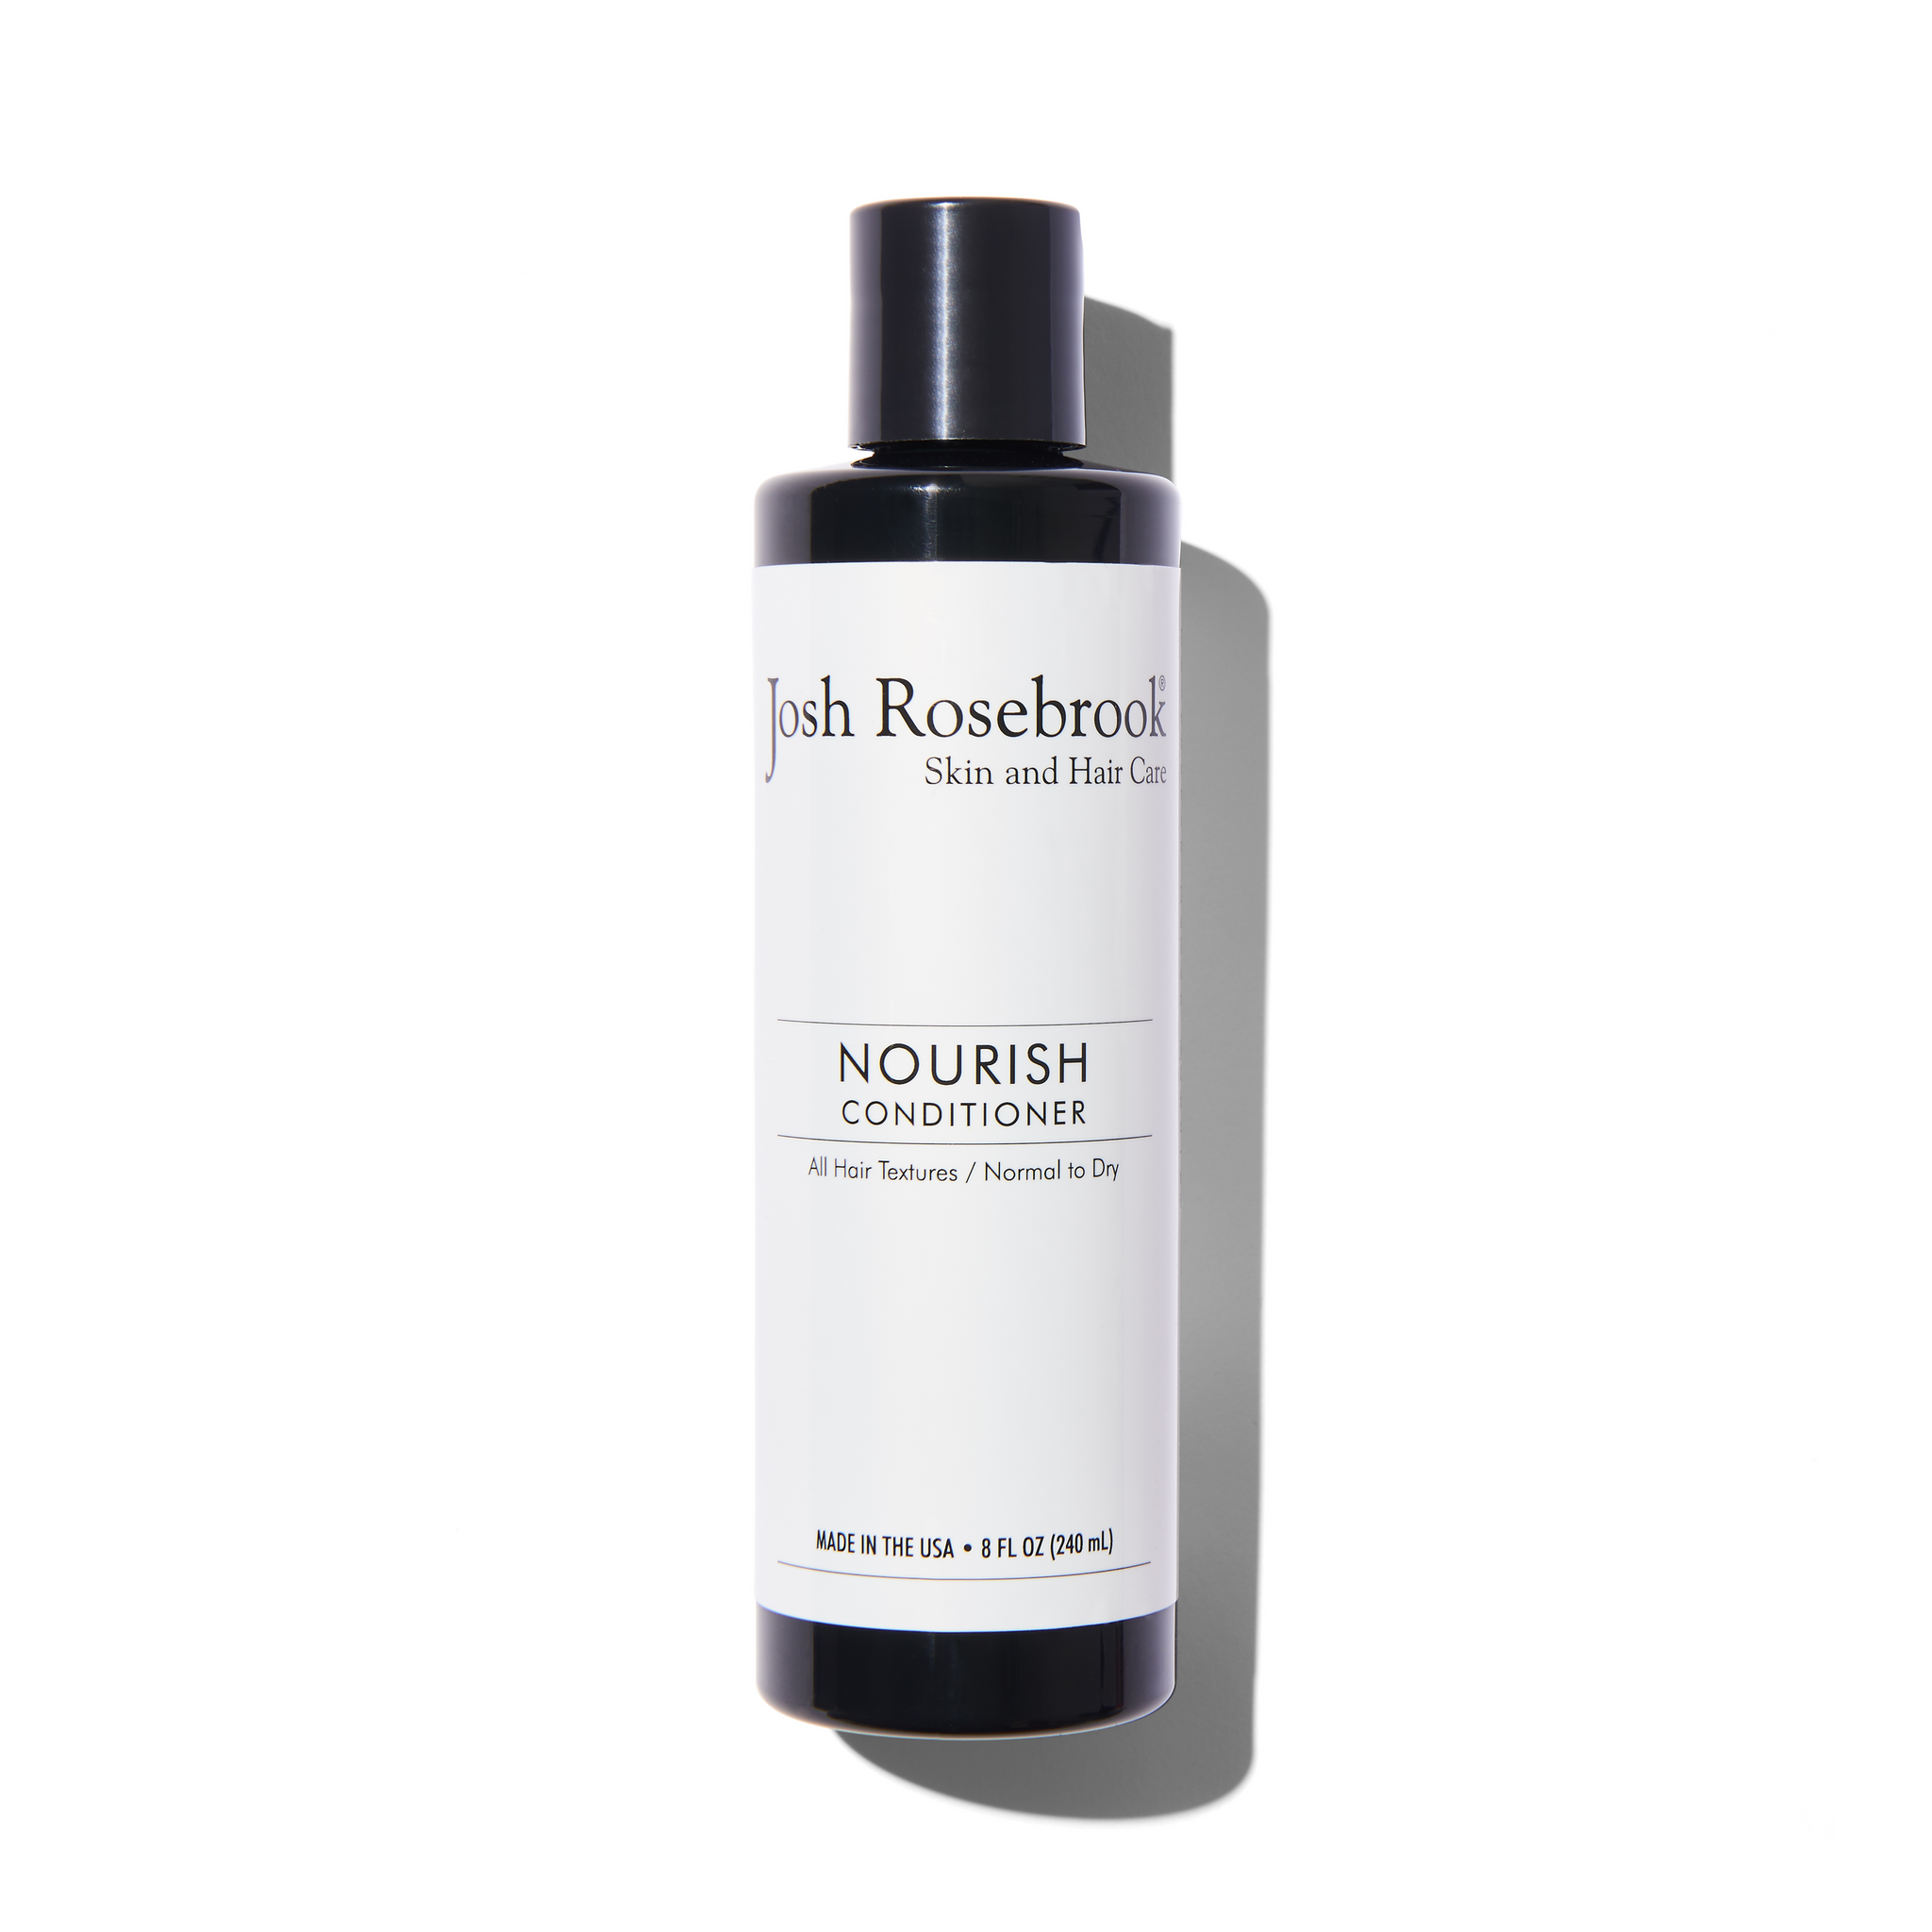 851727005058 - Josh Rosebrook Nourish Conditioner